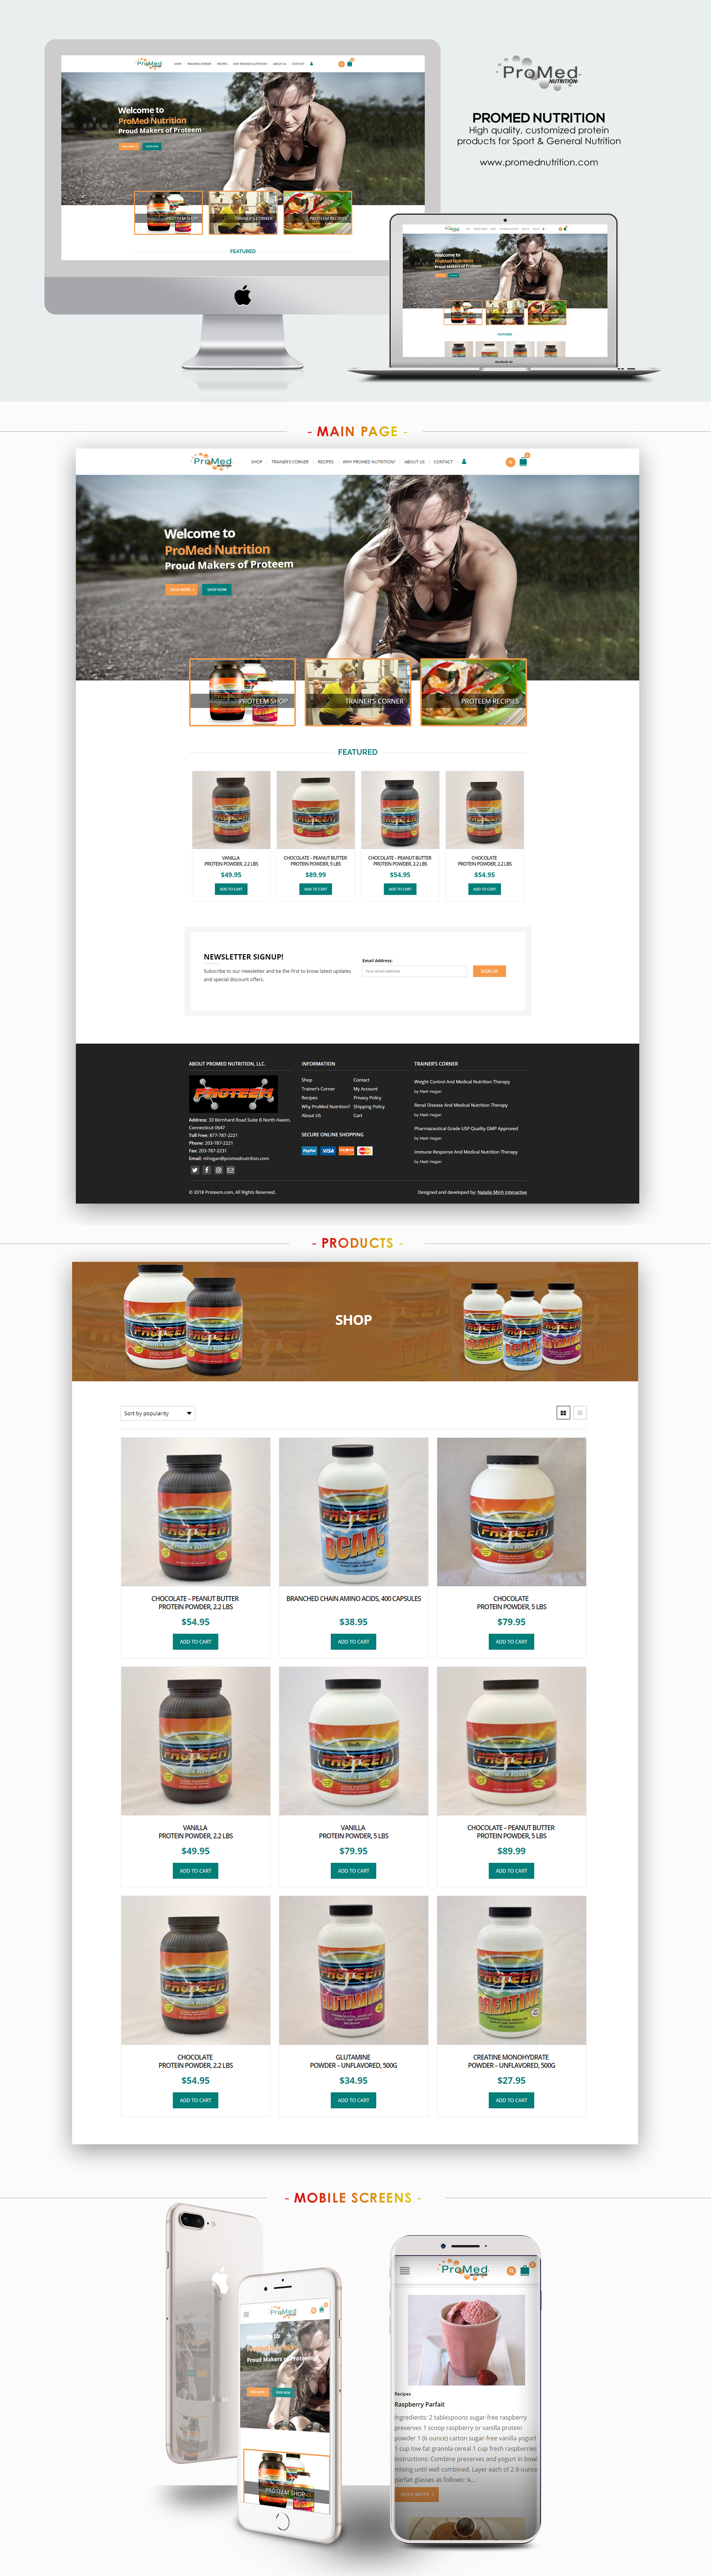 ProMed Nutrition Website Design